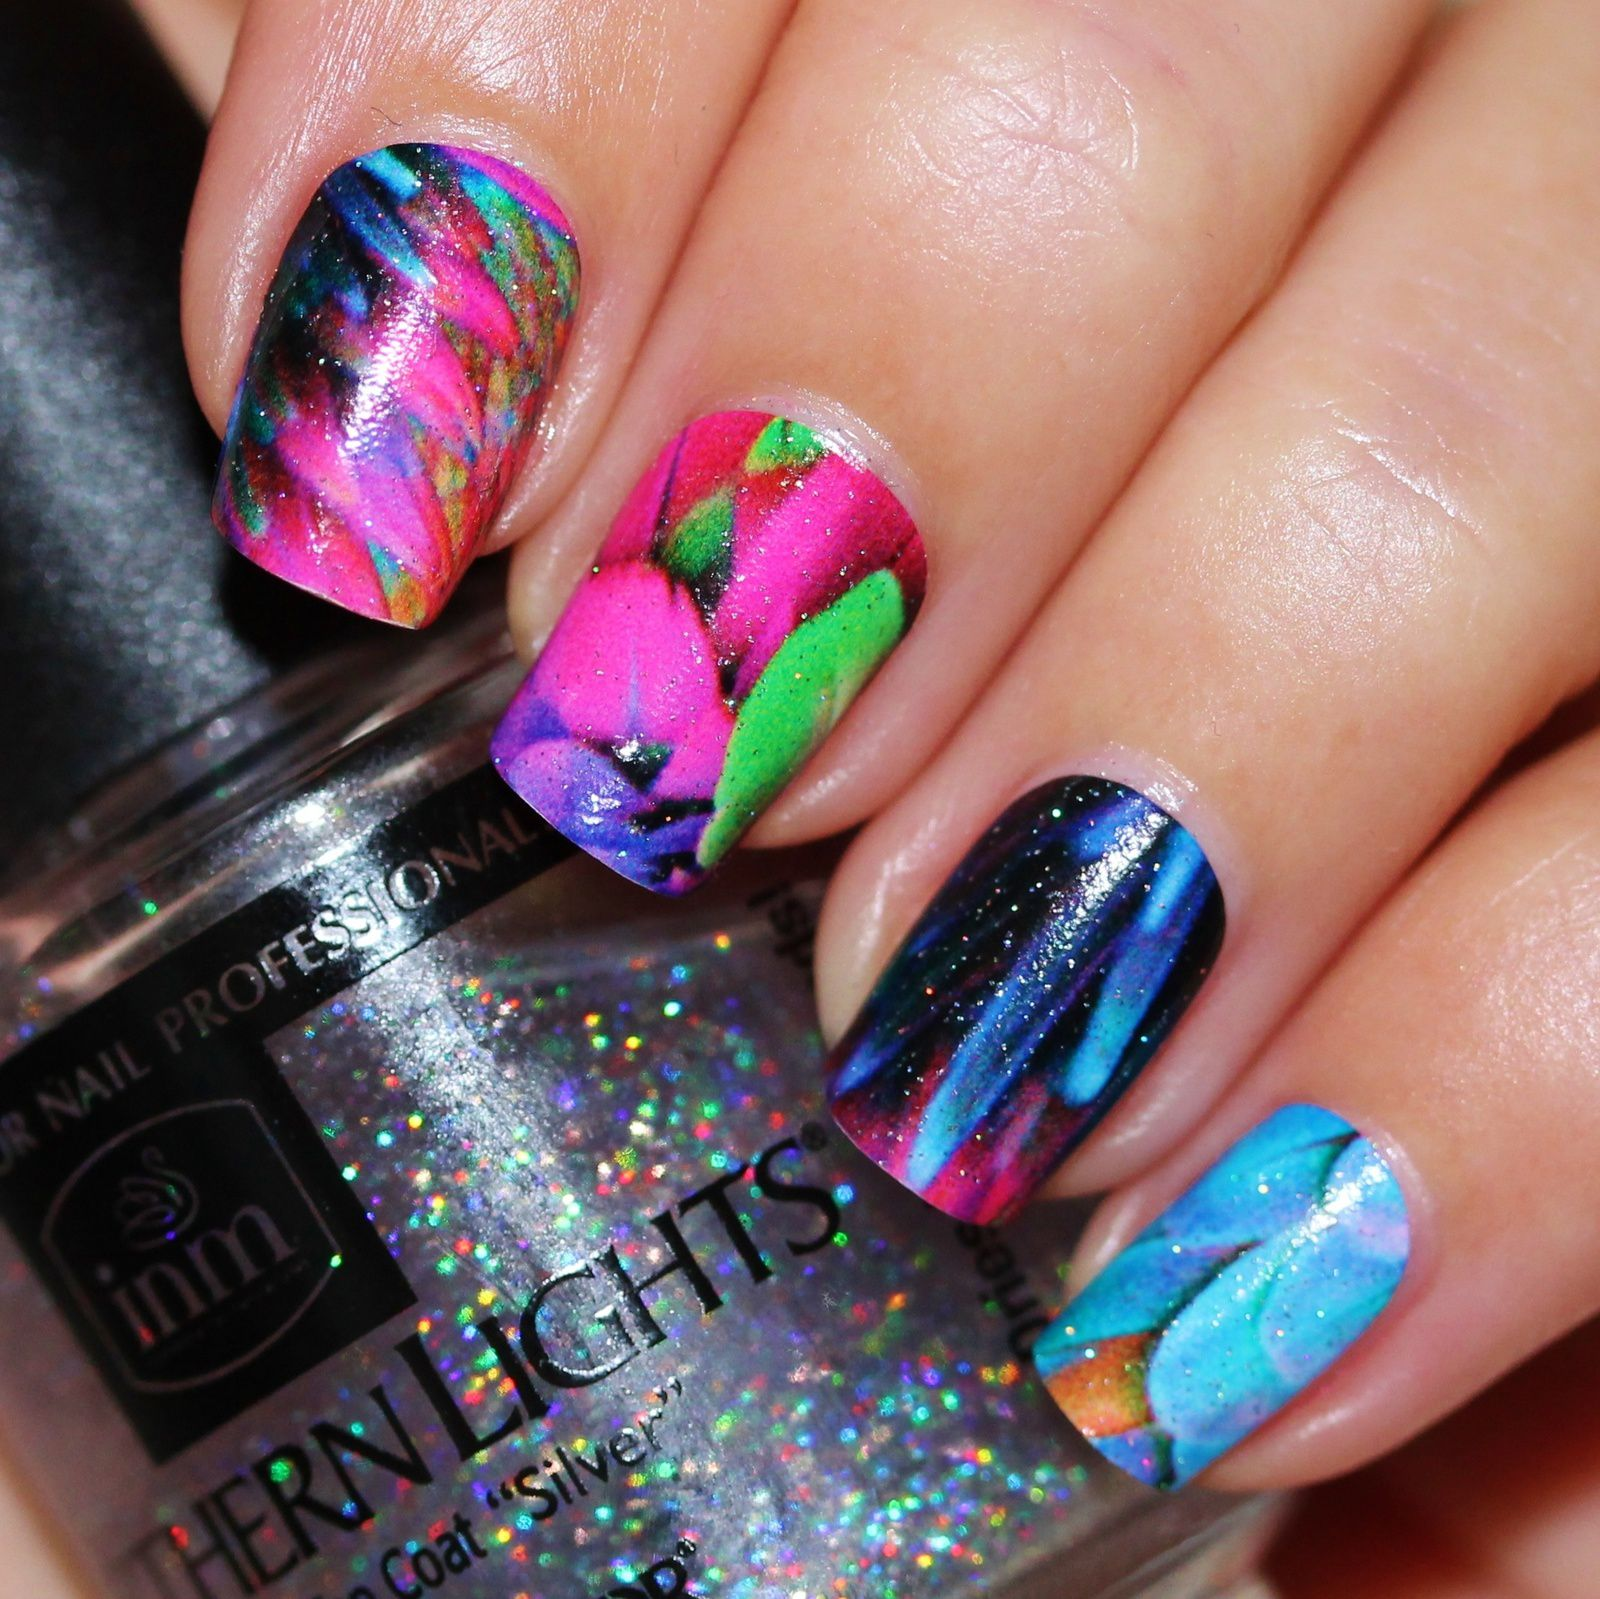 Essie Protein Base Coat / ncLA Nail Wraps Birds of Paradise / Northern Lights Top Coat